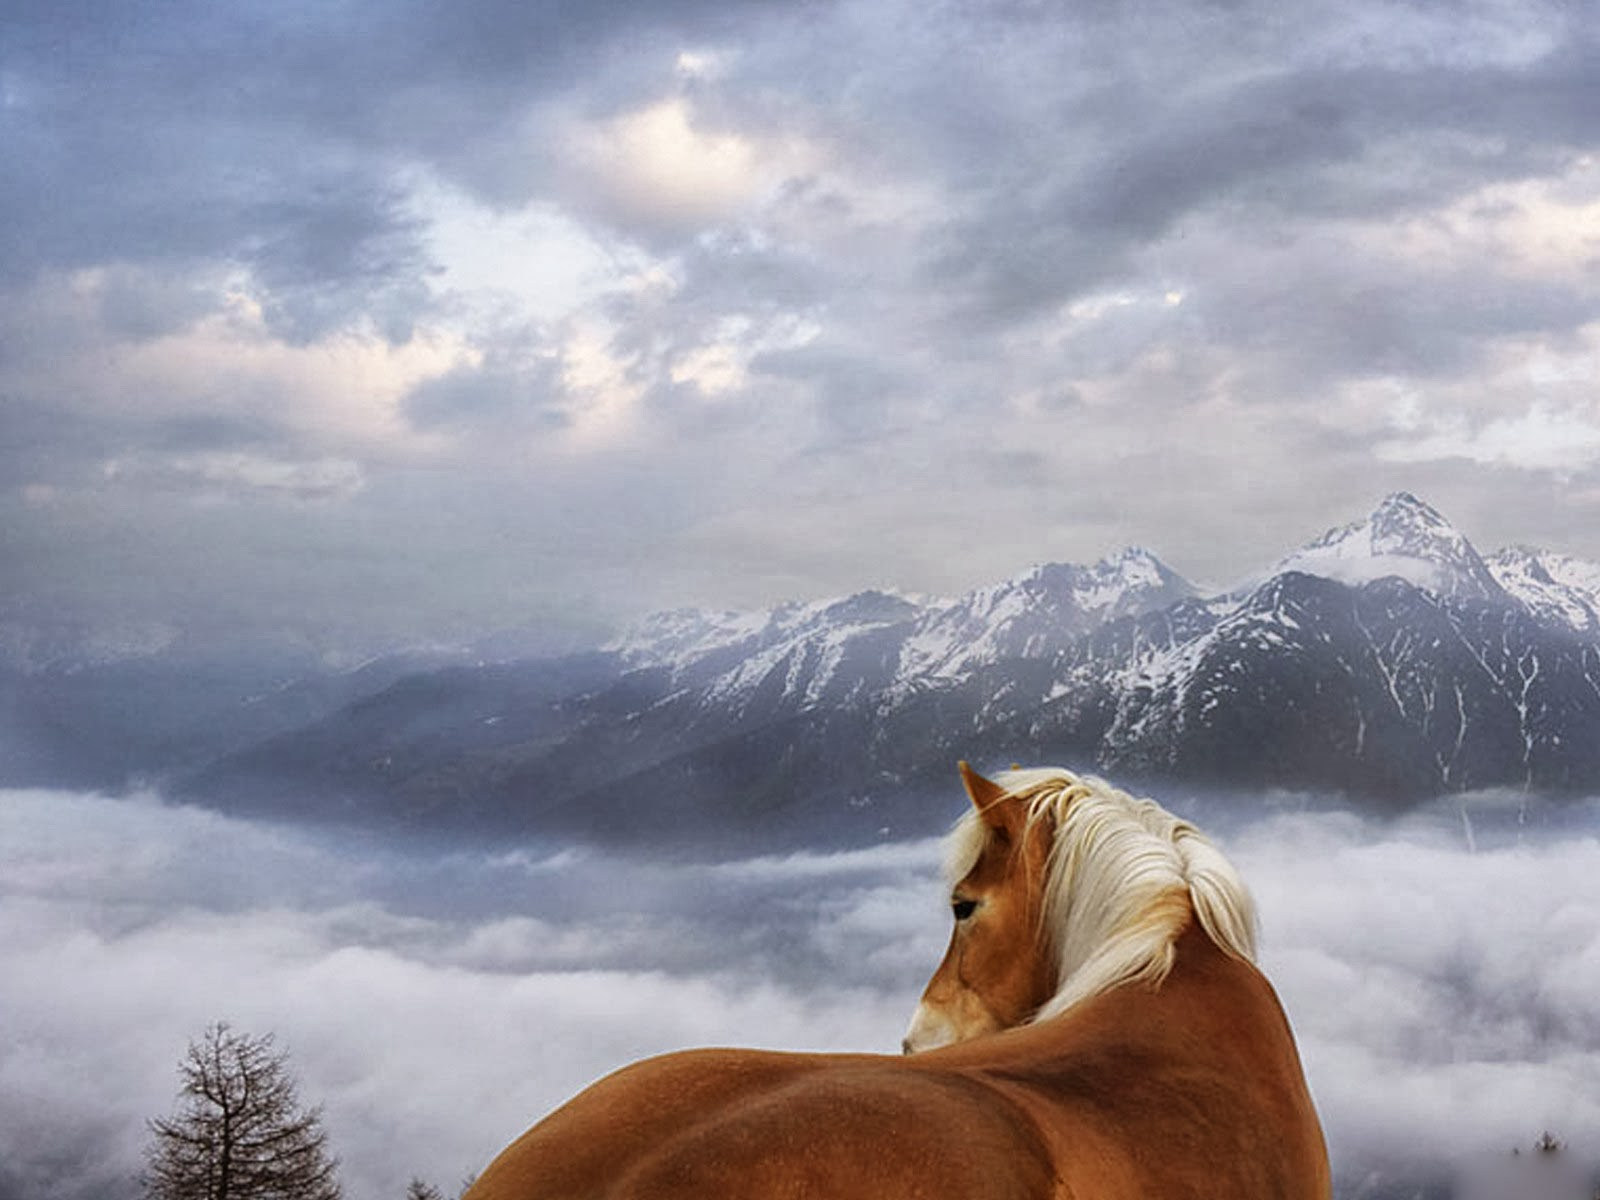 Horses hd wallpapers free hd wallpapers - Free horse backgrounds ...